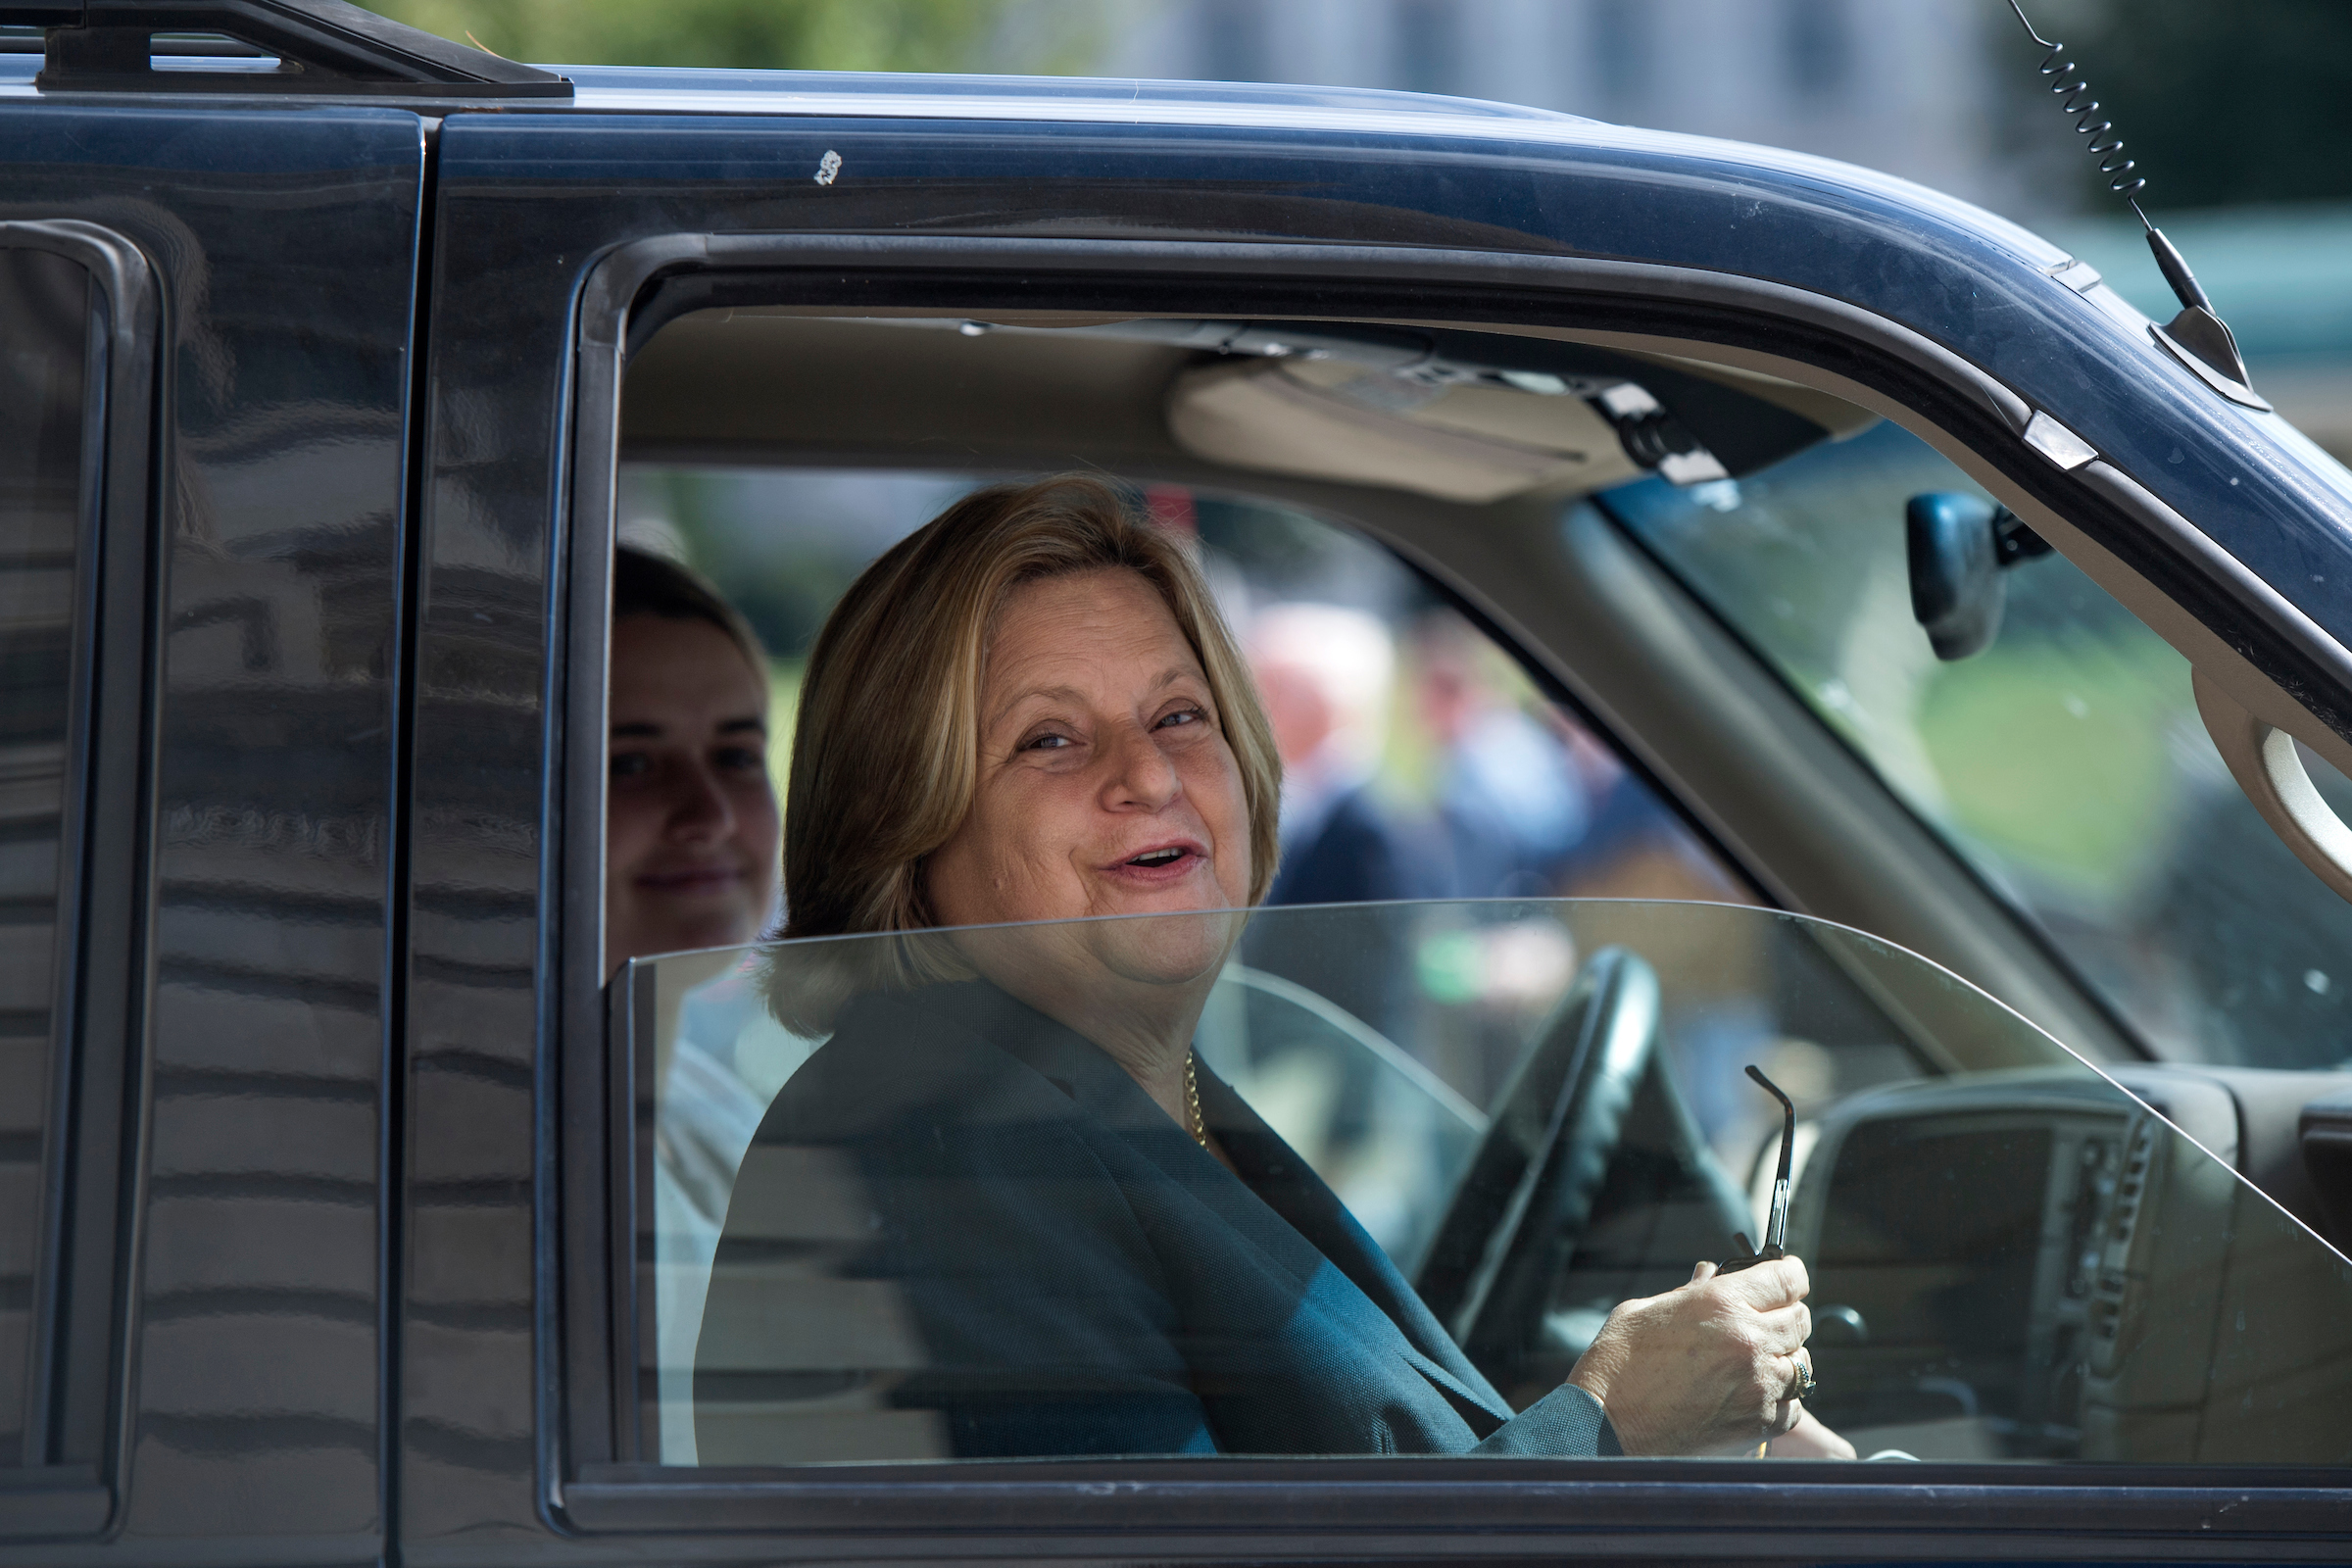 UNITED STATES - OCTOBER 05: Rep. Ileana Ros-Lehtinen, R-Fla., leaves the Capitol after the last votes of the week on October 5, 2017. (Photo By Tom Williams/CQ Roll Call)